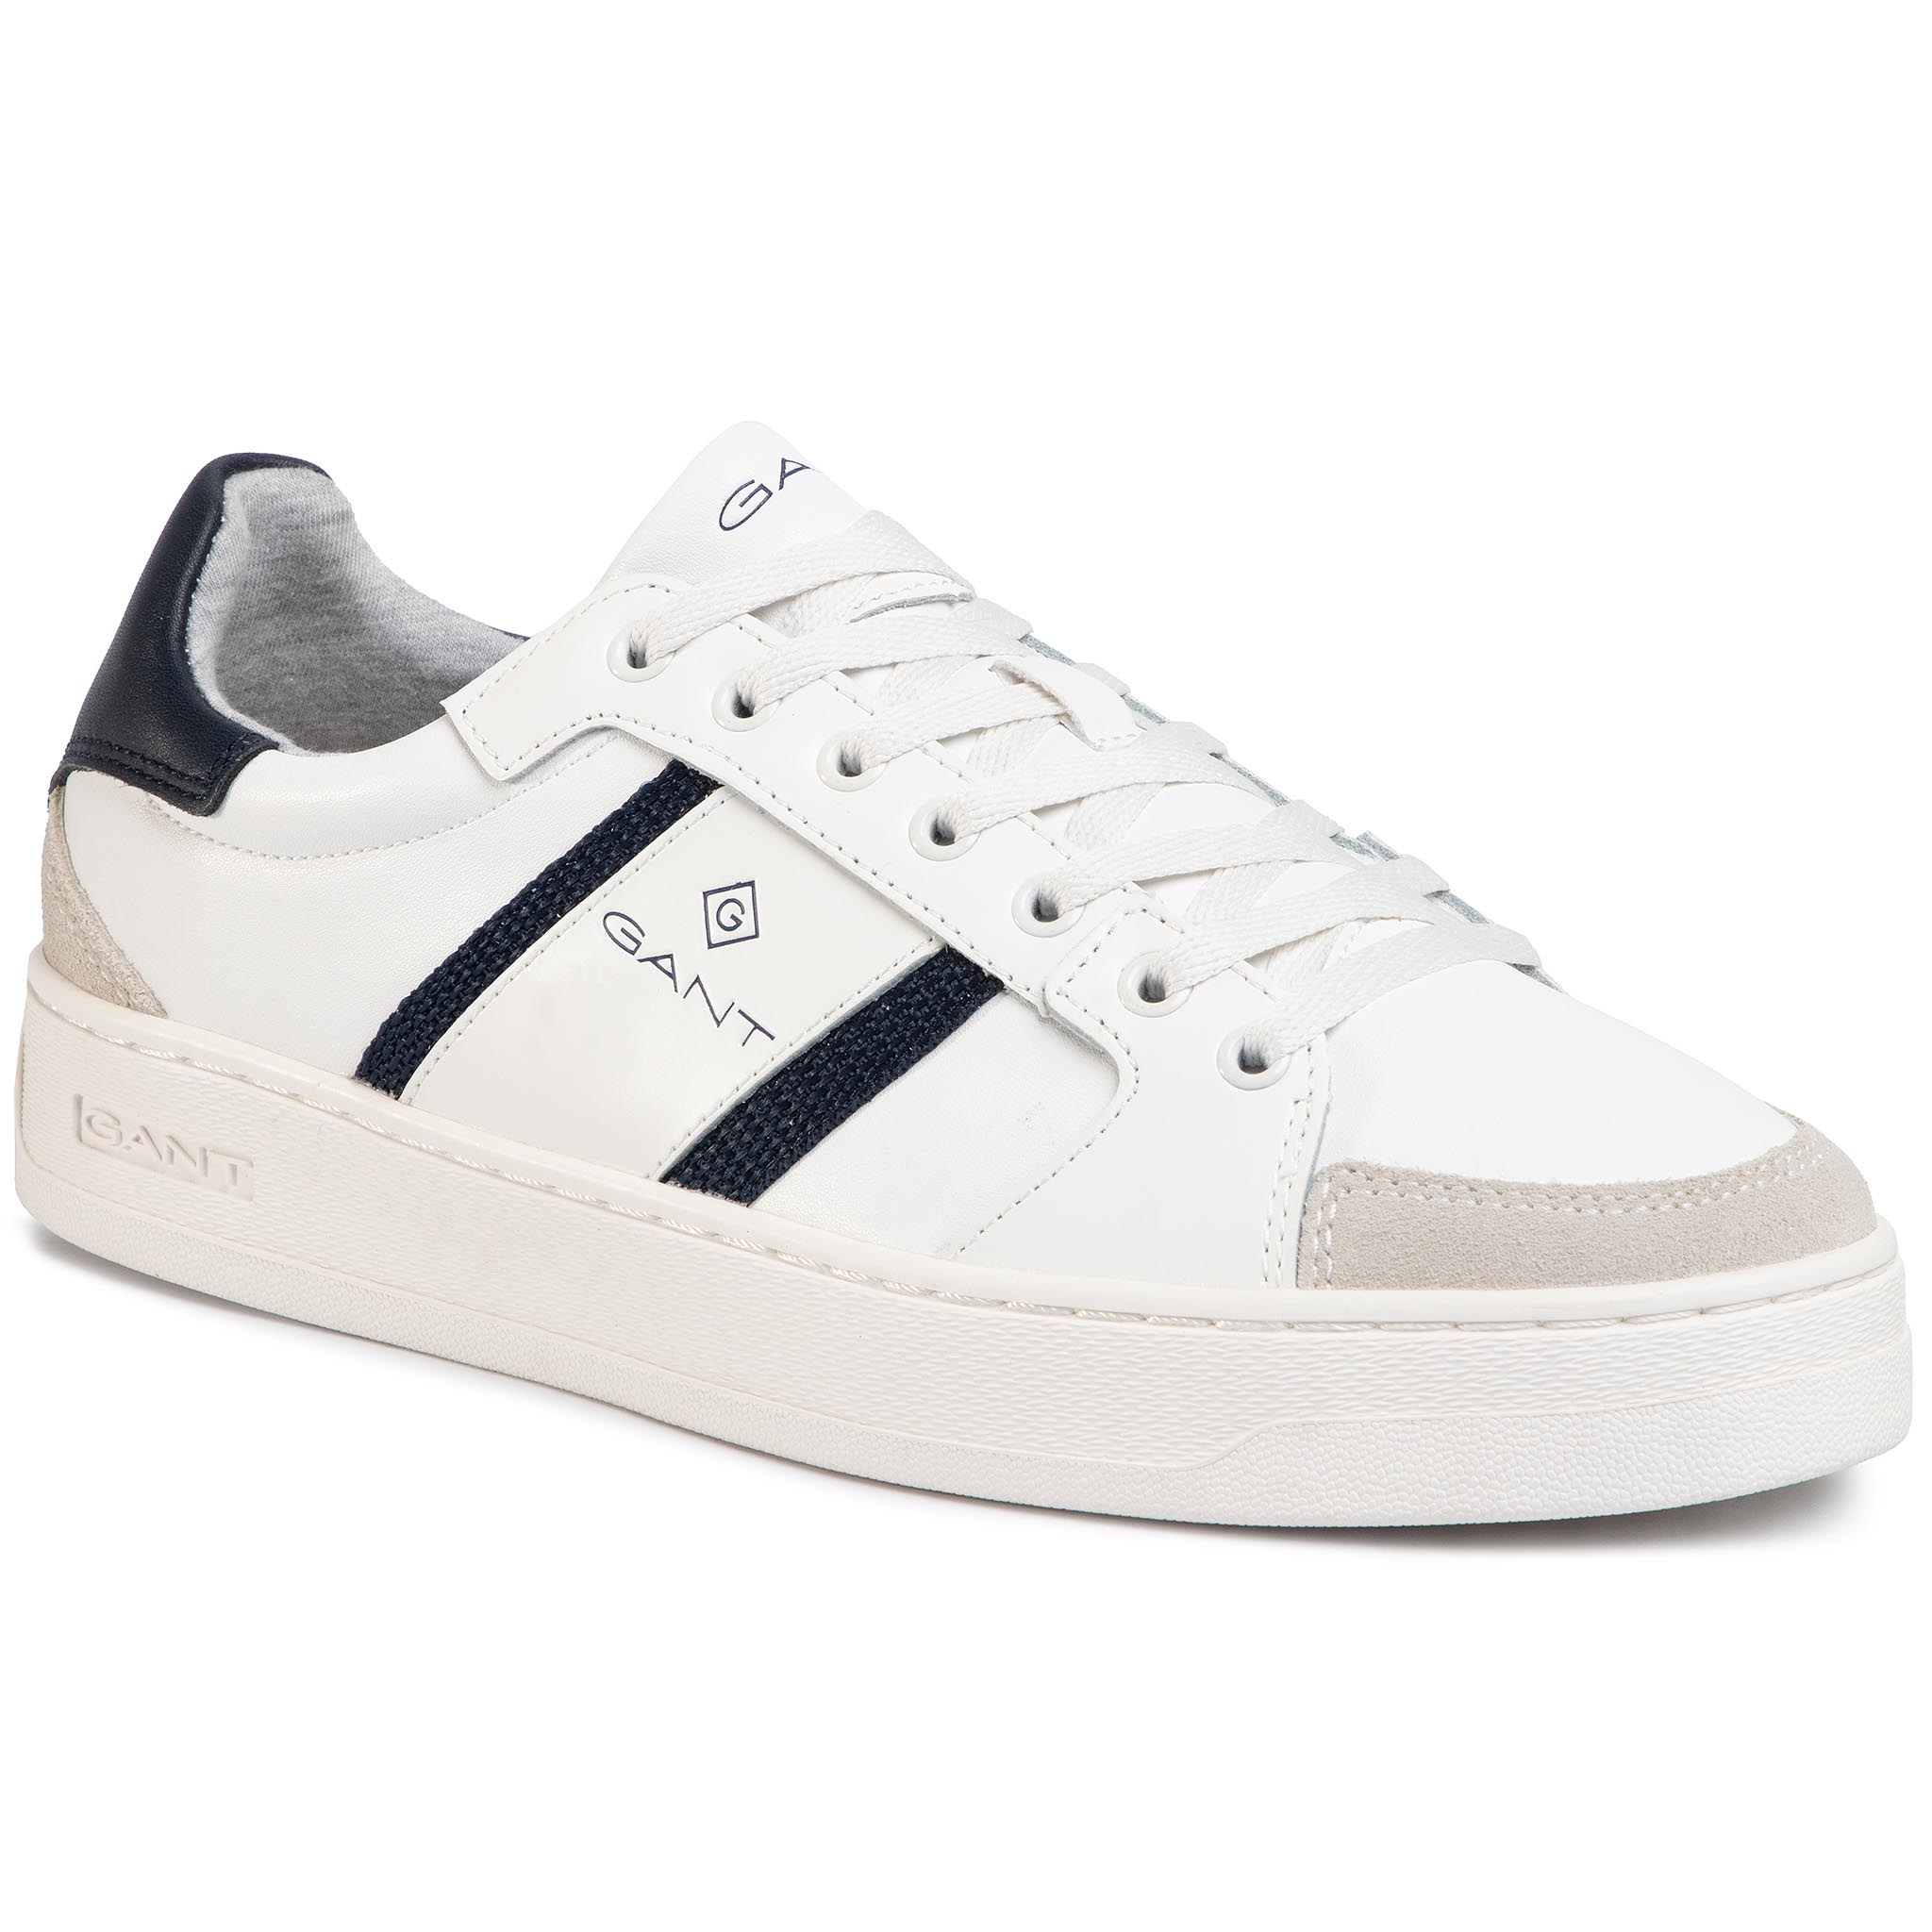 Sneakers GANT - Le Brook 20633476 Off White G20